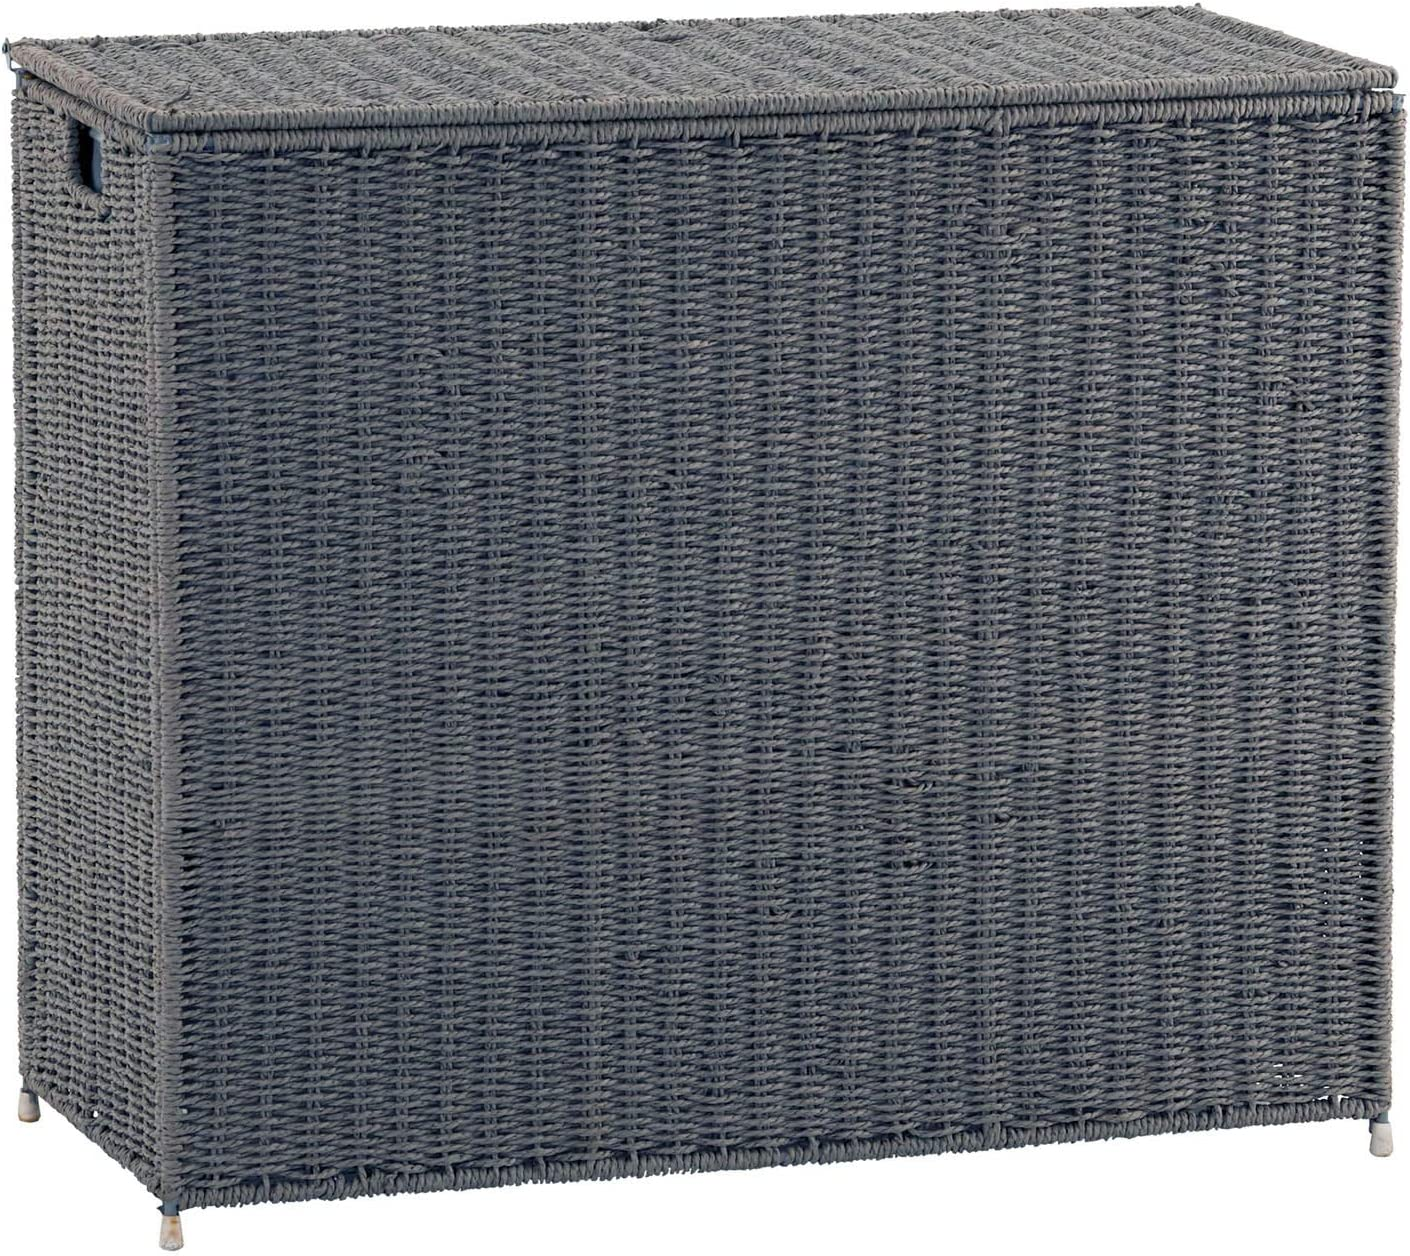 Household Essentials Grey ML-7245 Wicker 3 Compartment Laundry Sorter with Lid | 3 Section Clothes Hamper